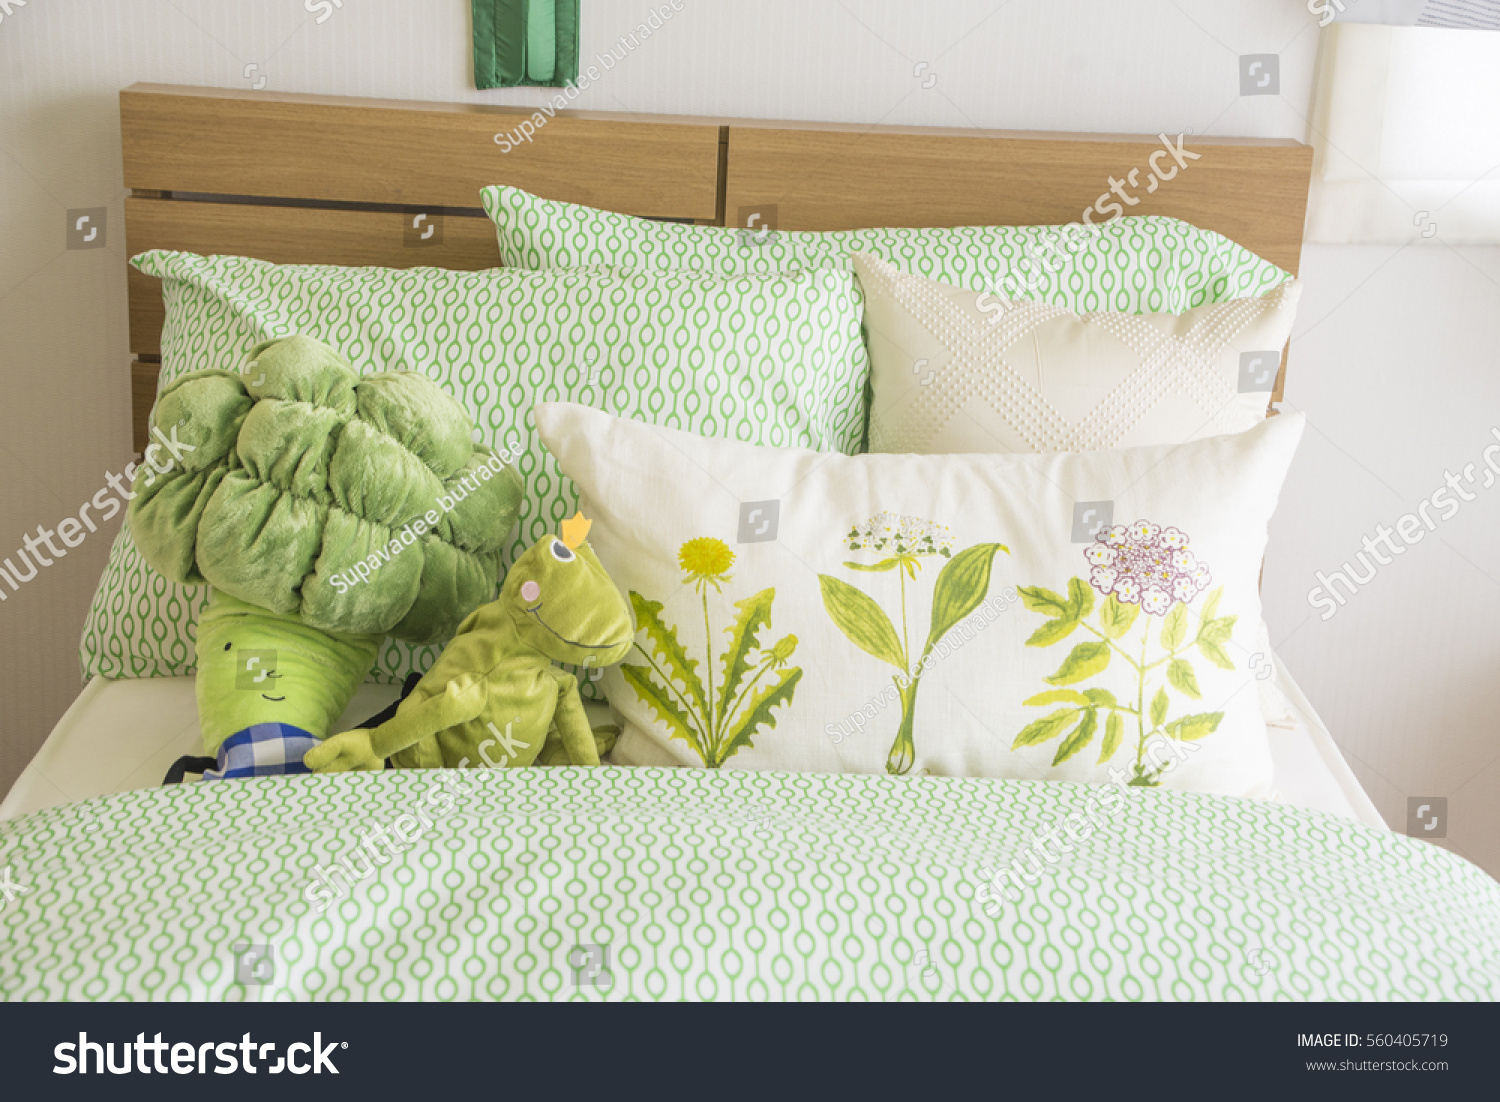 Throw Pillows On The Bed Song : Colorful Pillow On Bed Stock Photo 560405719 - Shutterstock